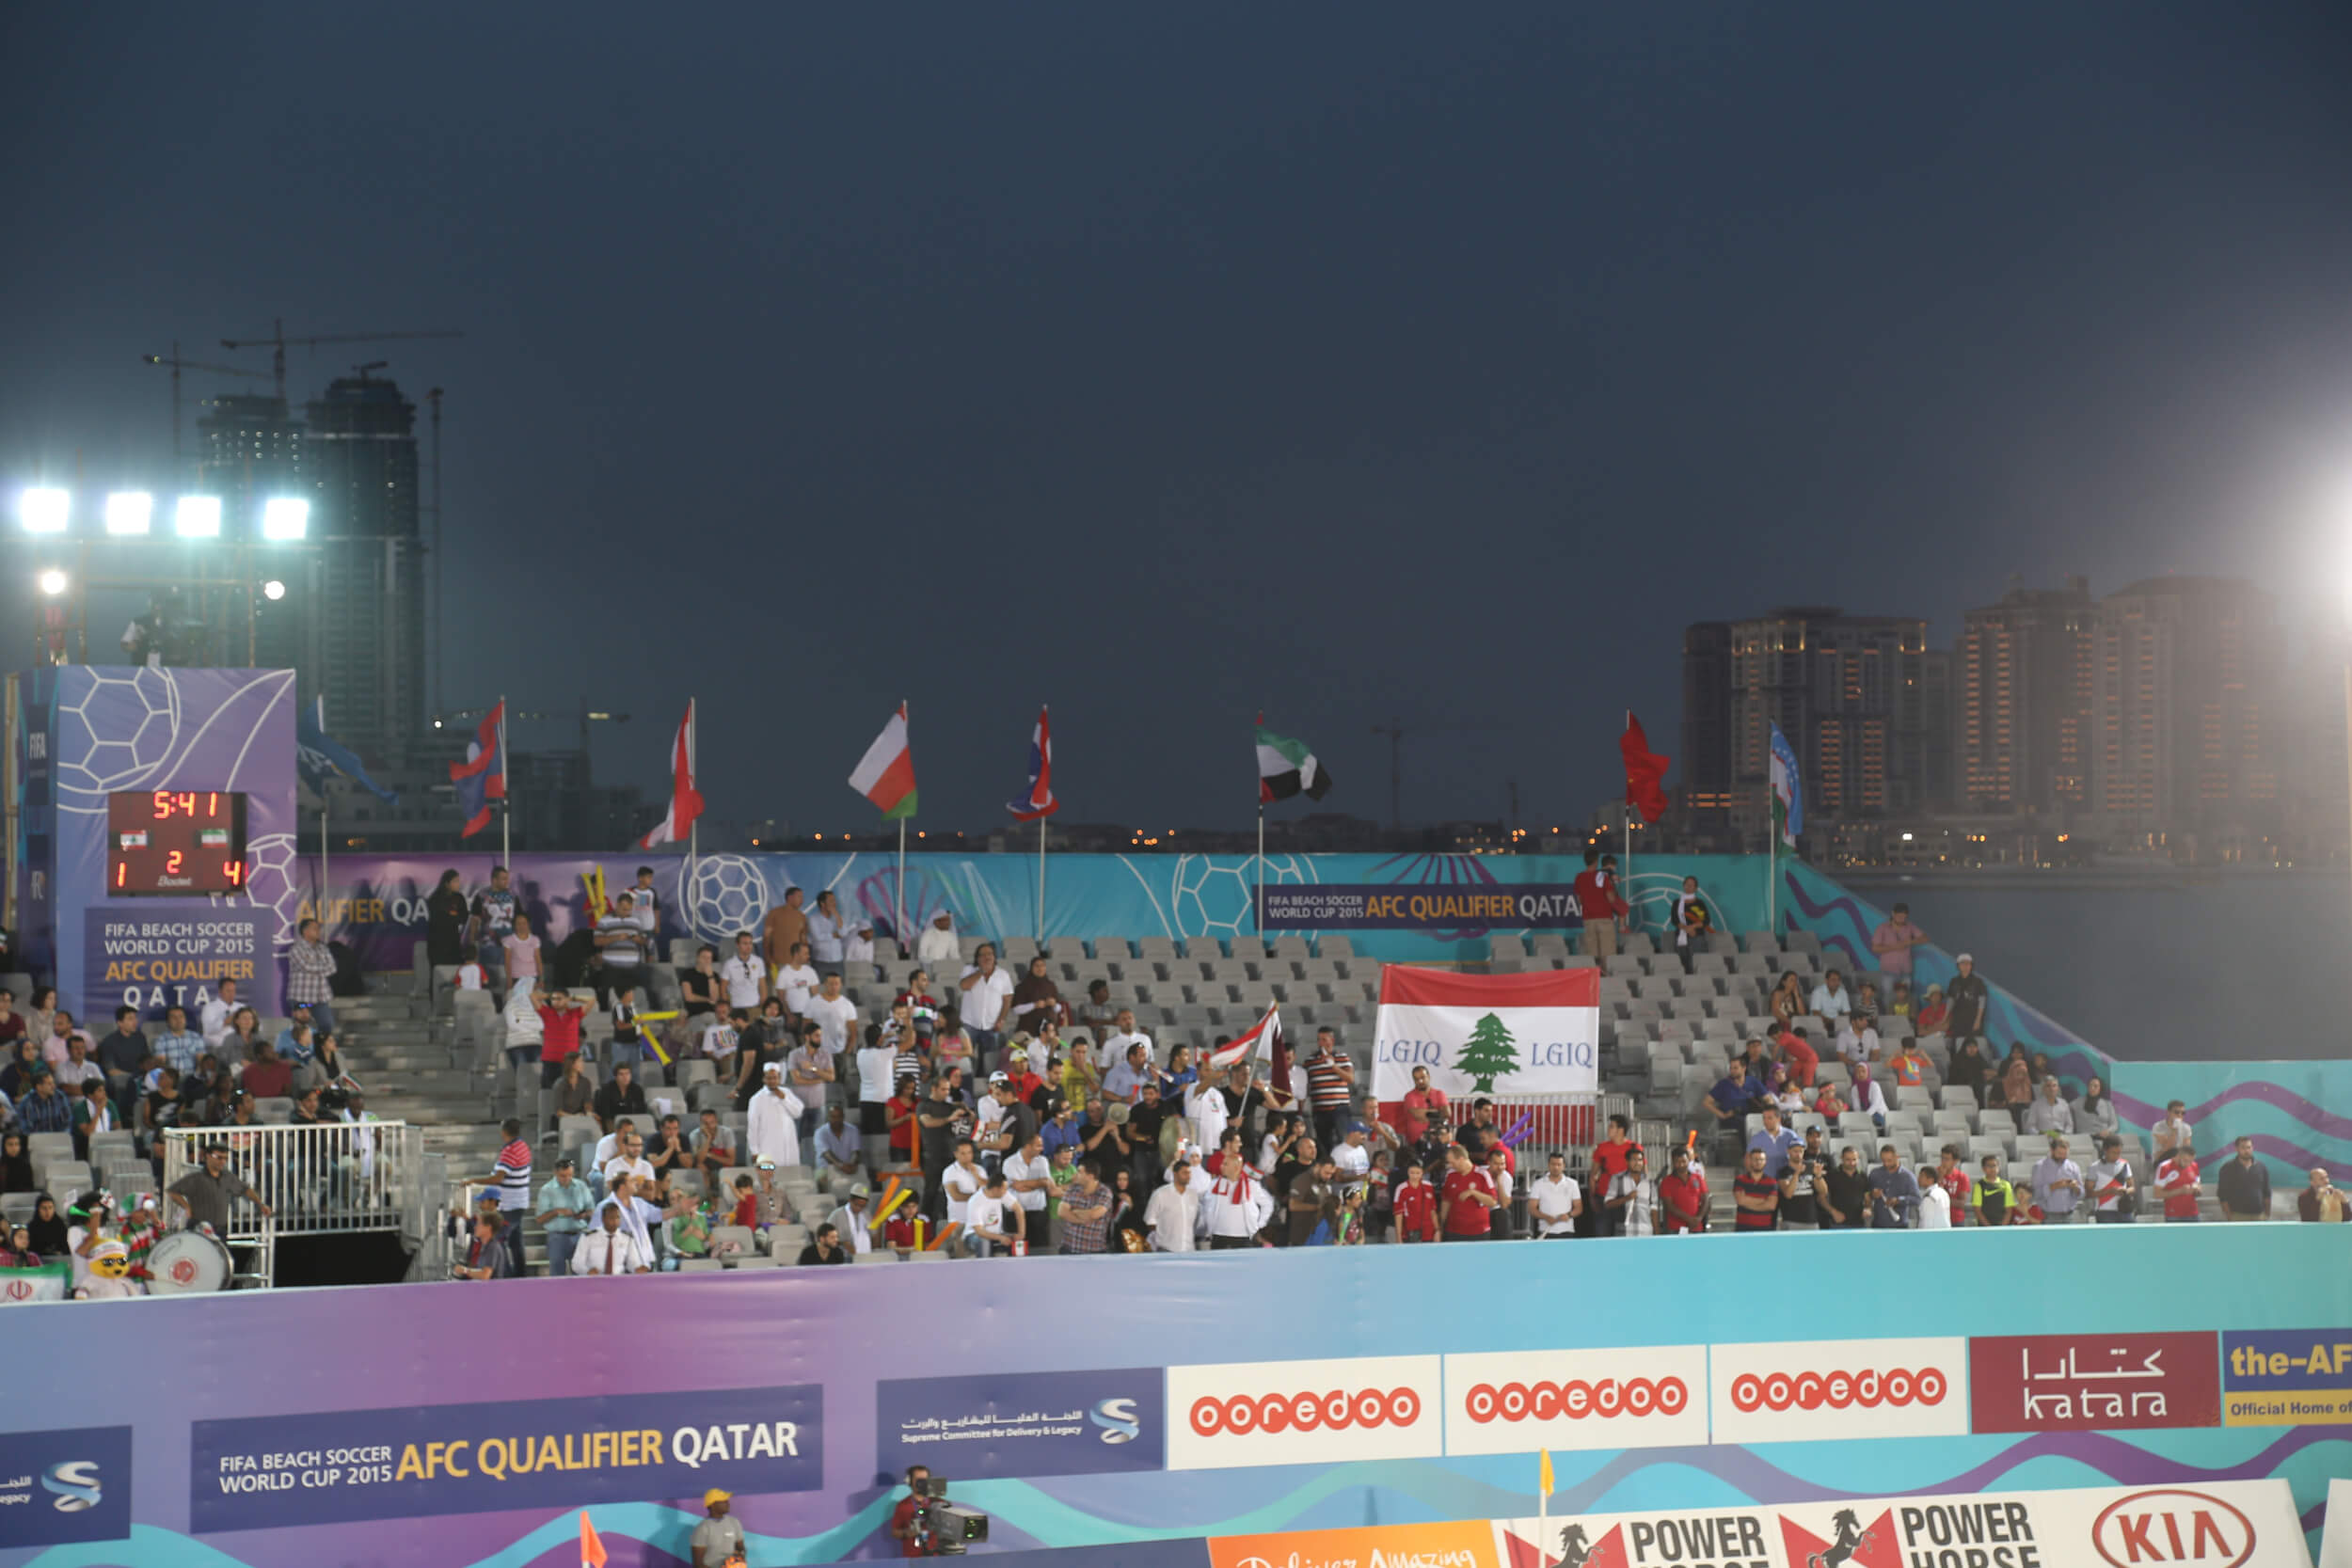 The missing Palestinian flag at the Beach Soccer Asian Qualifiers in Doha. (Photo: Raio Costa)